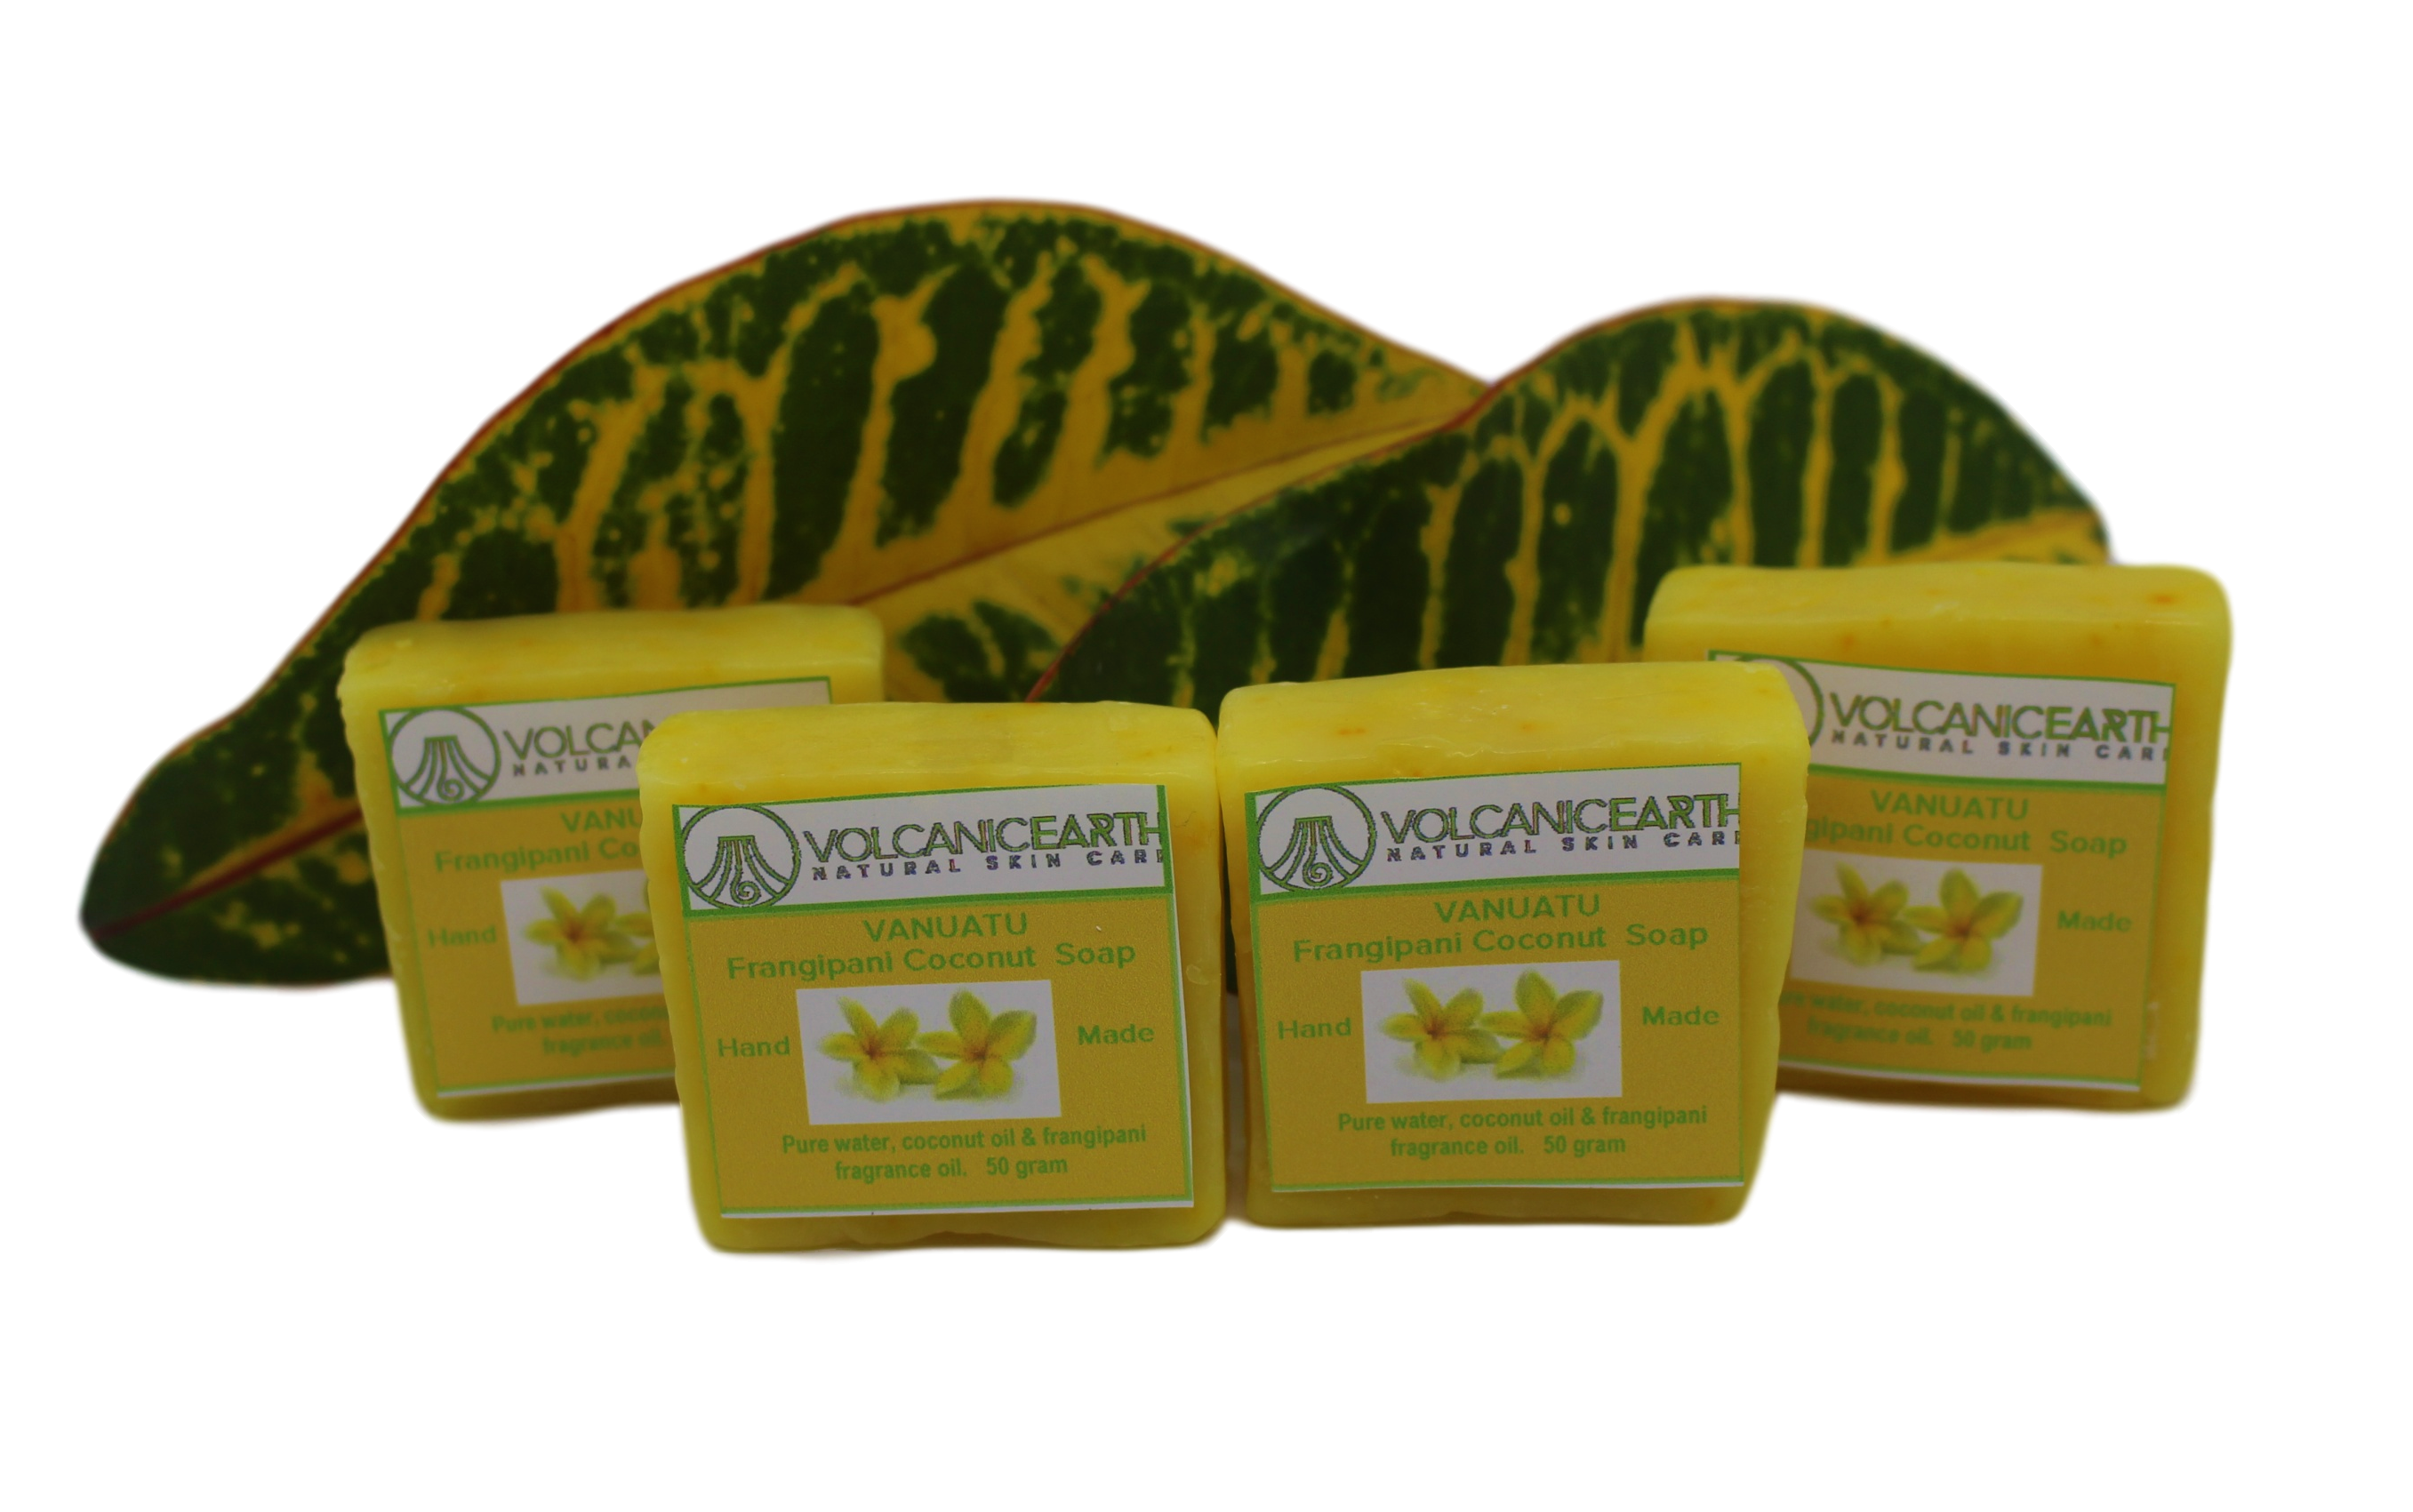 Volcanic Earth Frangipani - Pack of 4 (small) Soaps